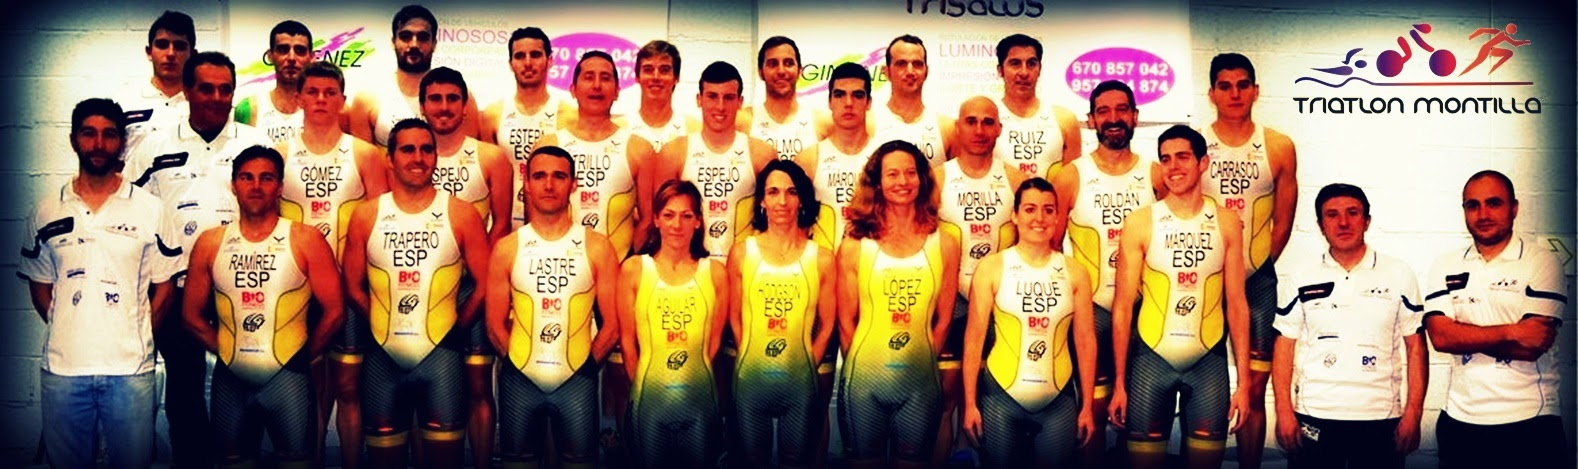 CLUB DEPORTIVO TRIATLON MONTILLA